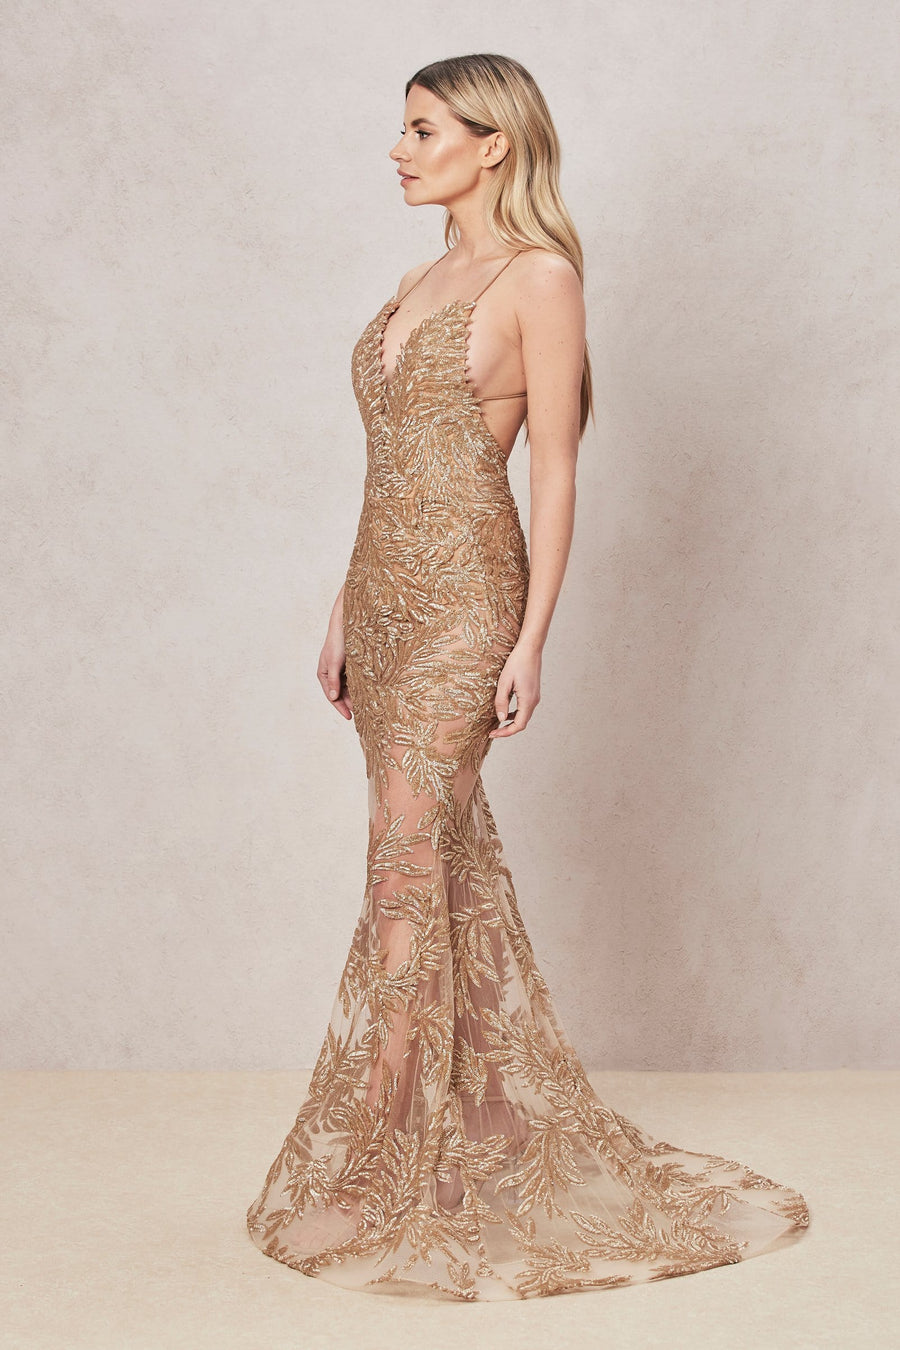 Stella Gold Dress